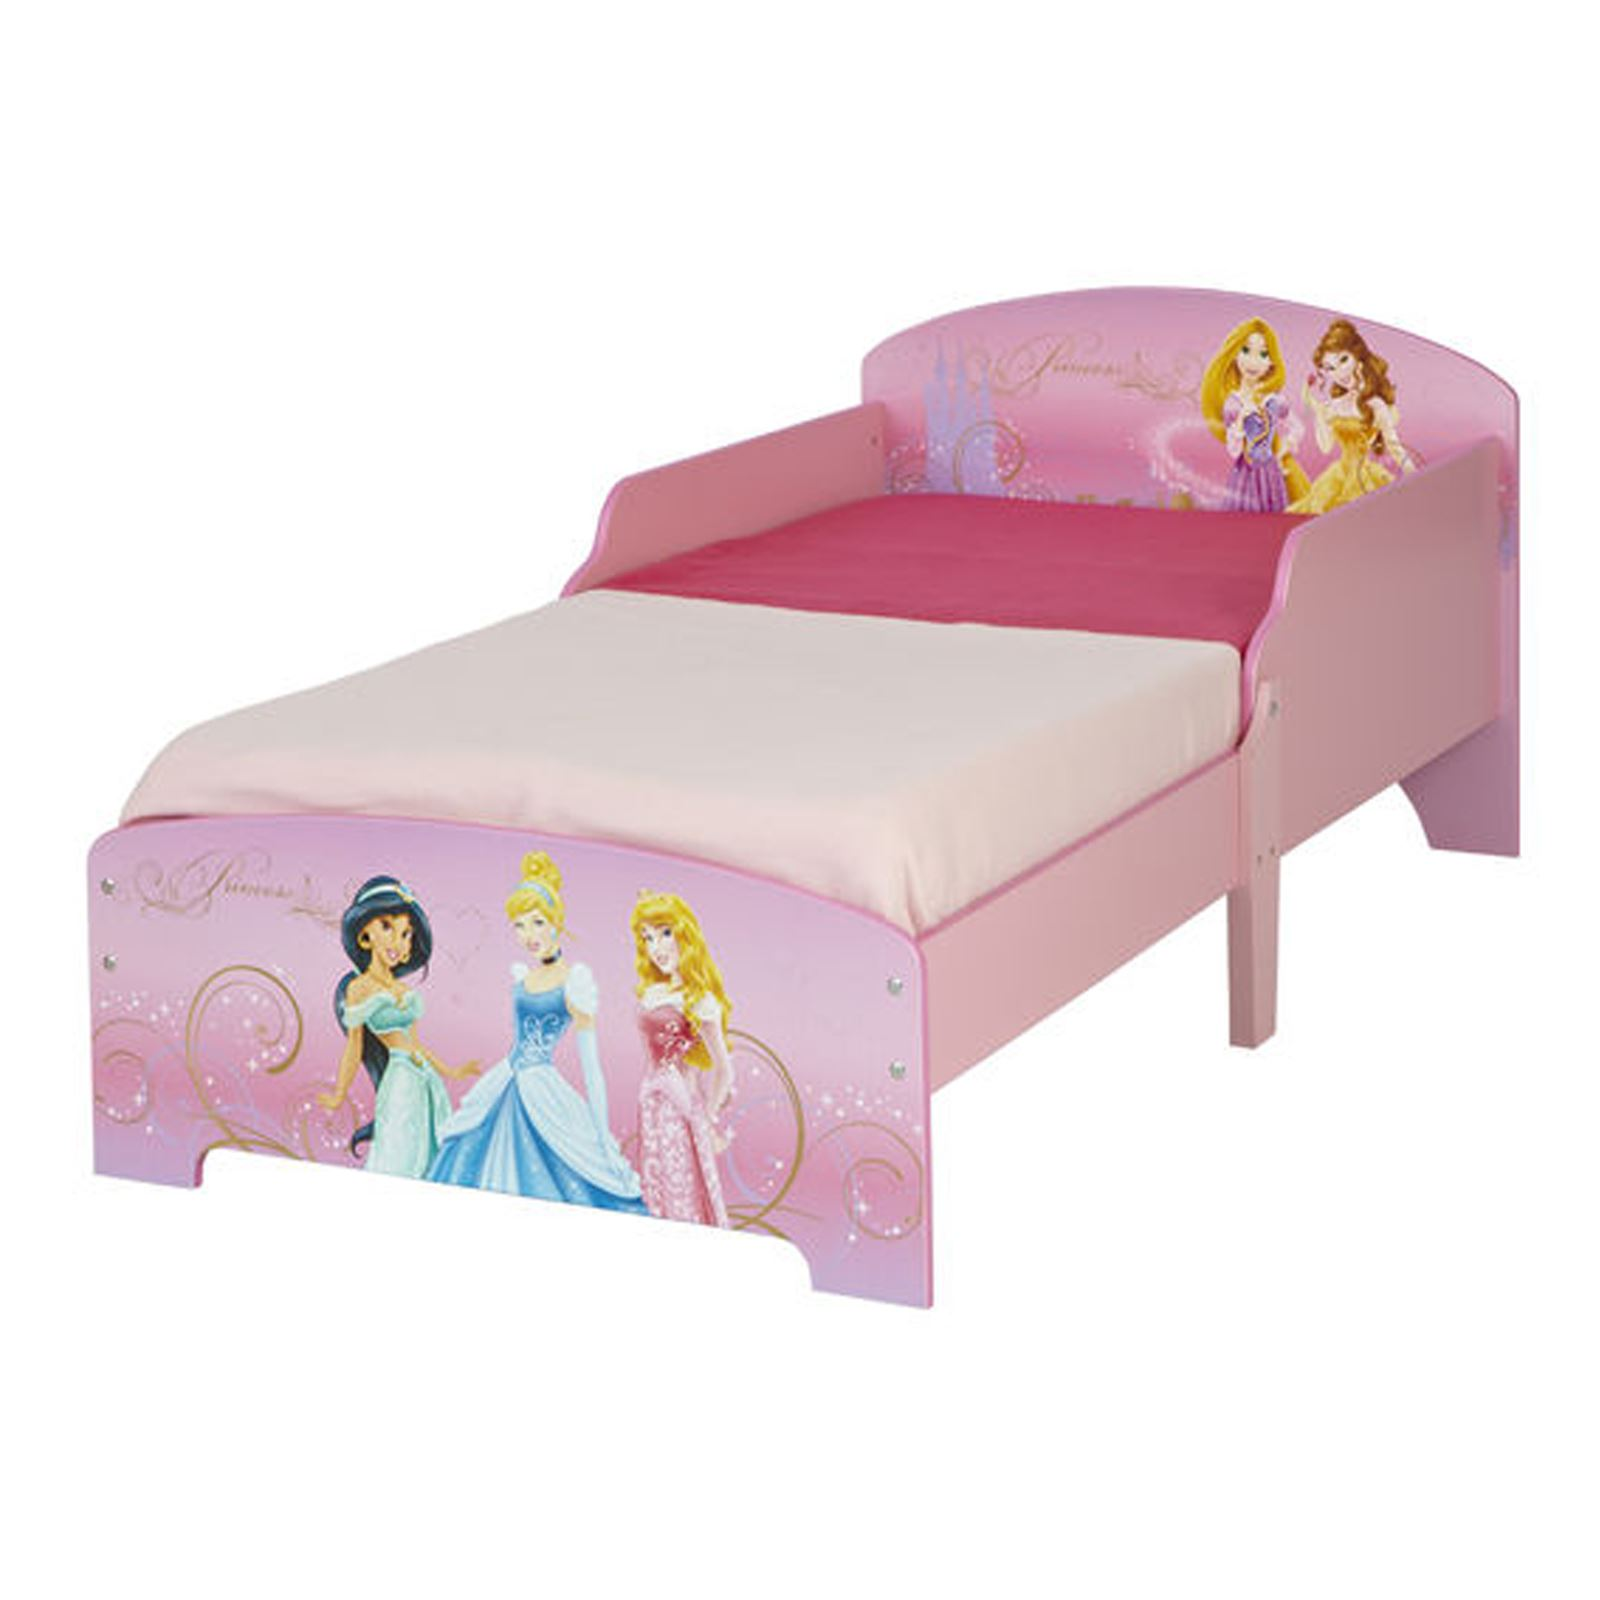 DISNEY PRINCESS MDF TODDLER BED NEW JUNIOR BEDROOM